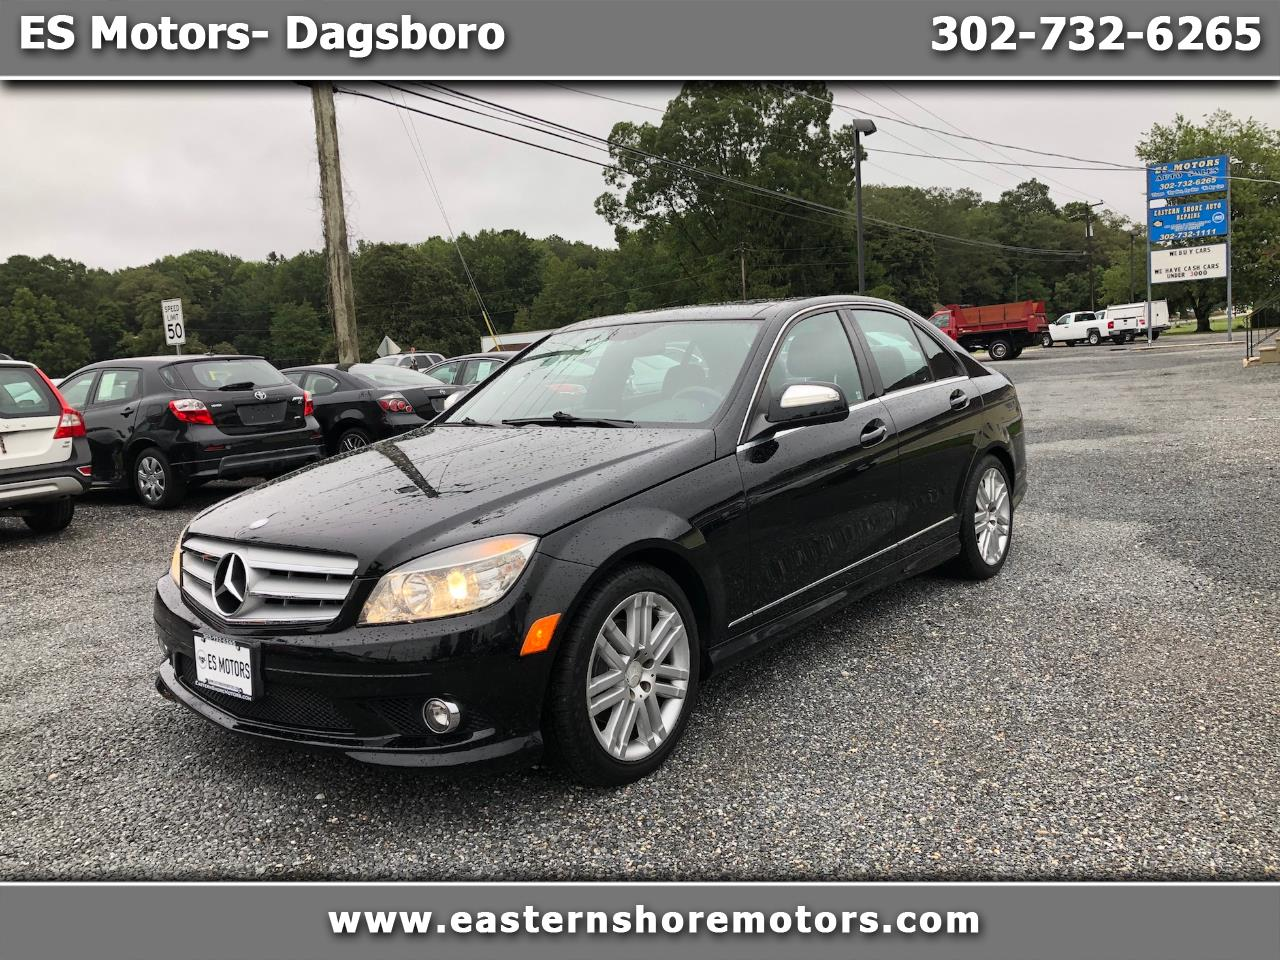 2008 Mercedes-Benz C-Class 4dr Sdn 3.0L Luxury 4MATIC